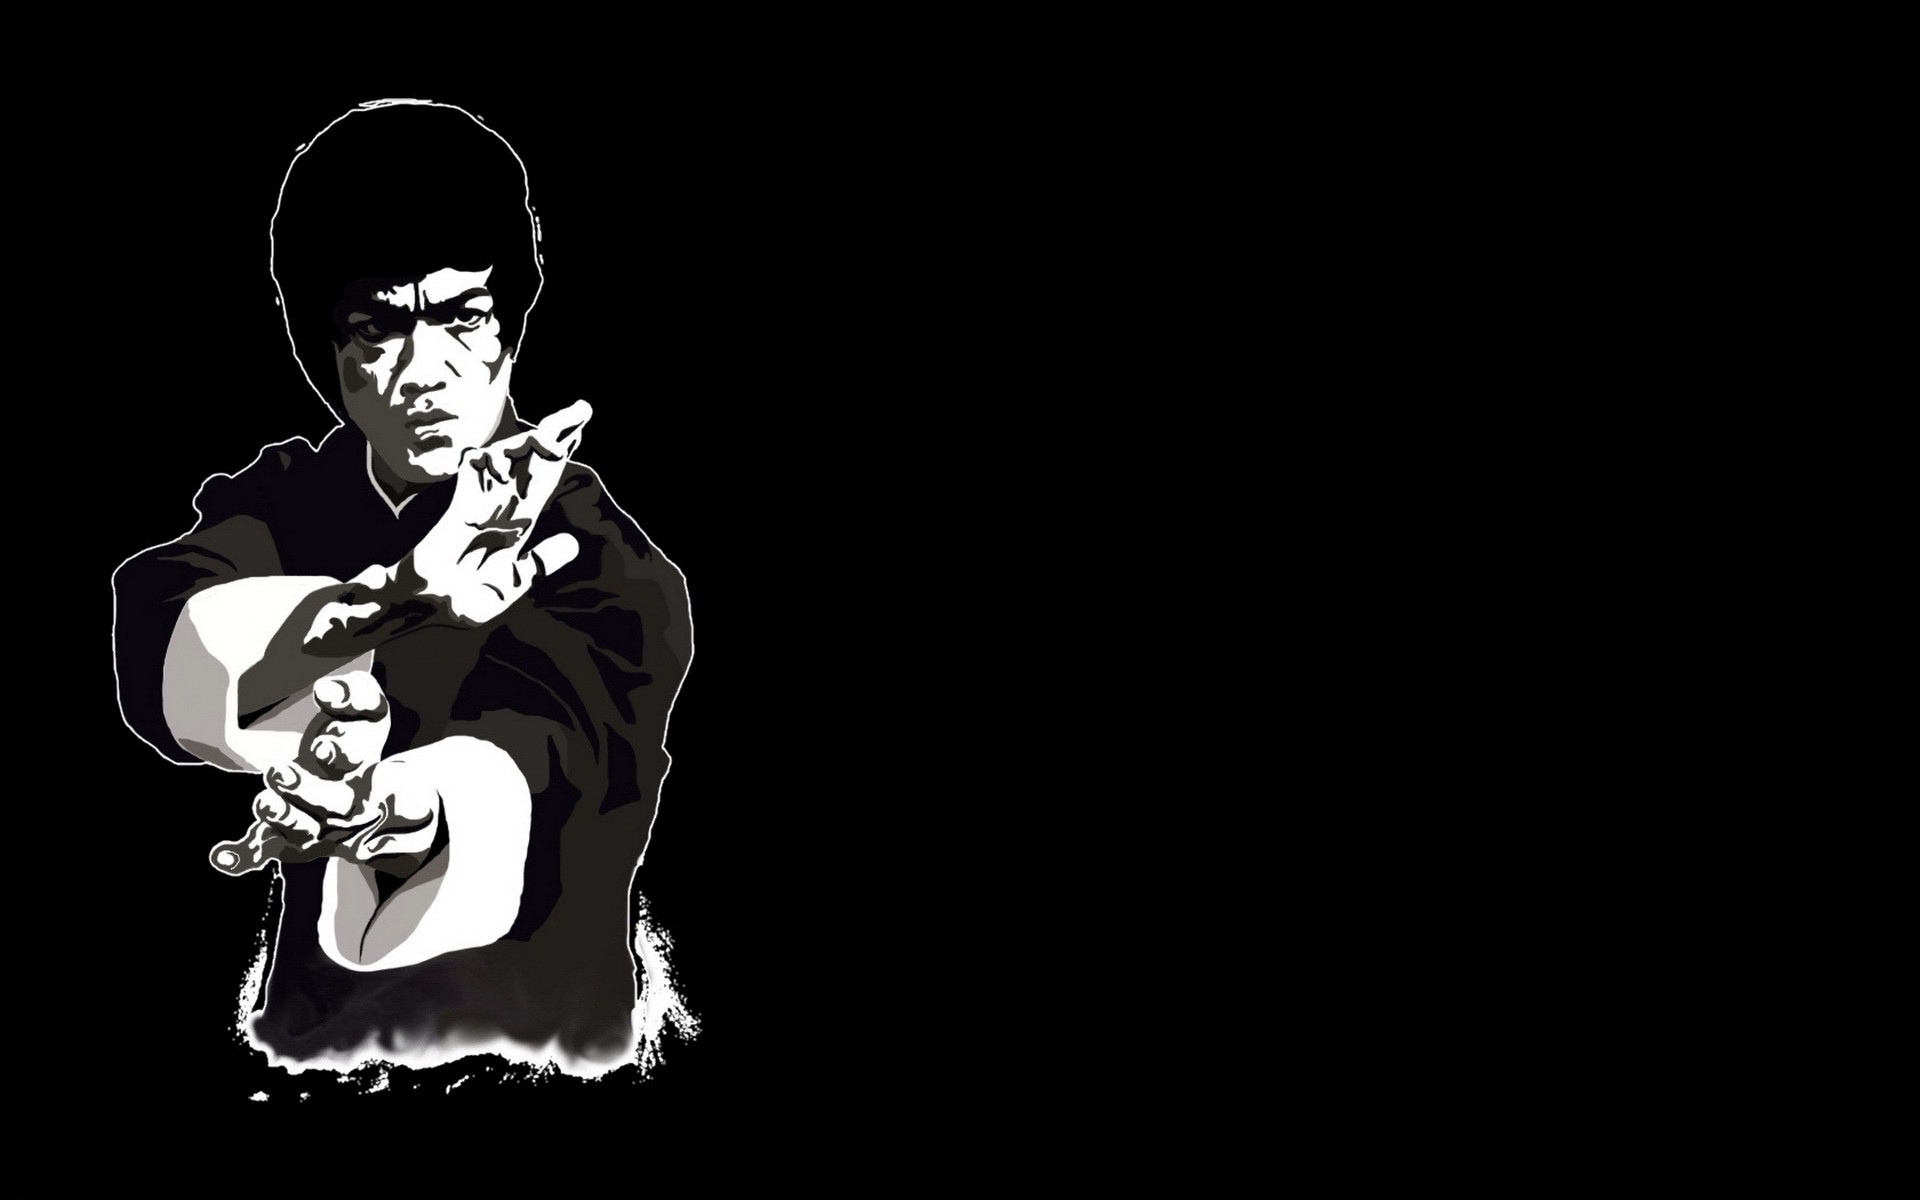 Wallpaper free download bruce lee wallpapers hd pic wpd0011264 download voltagebd Image collections